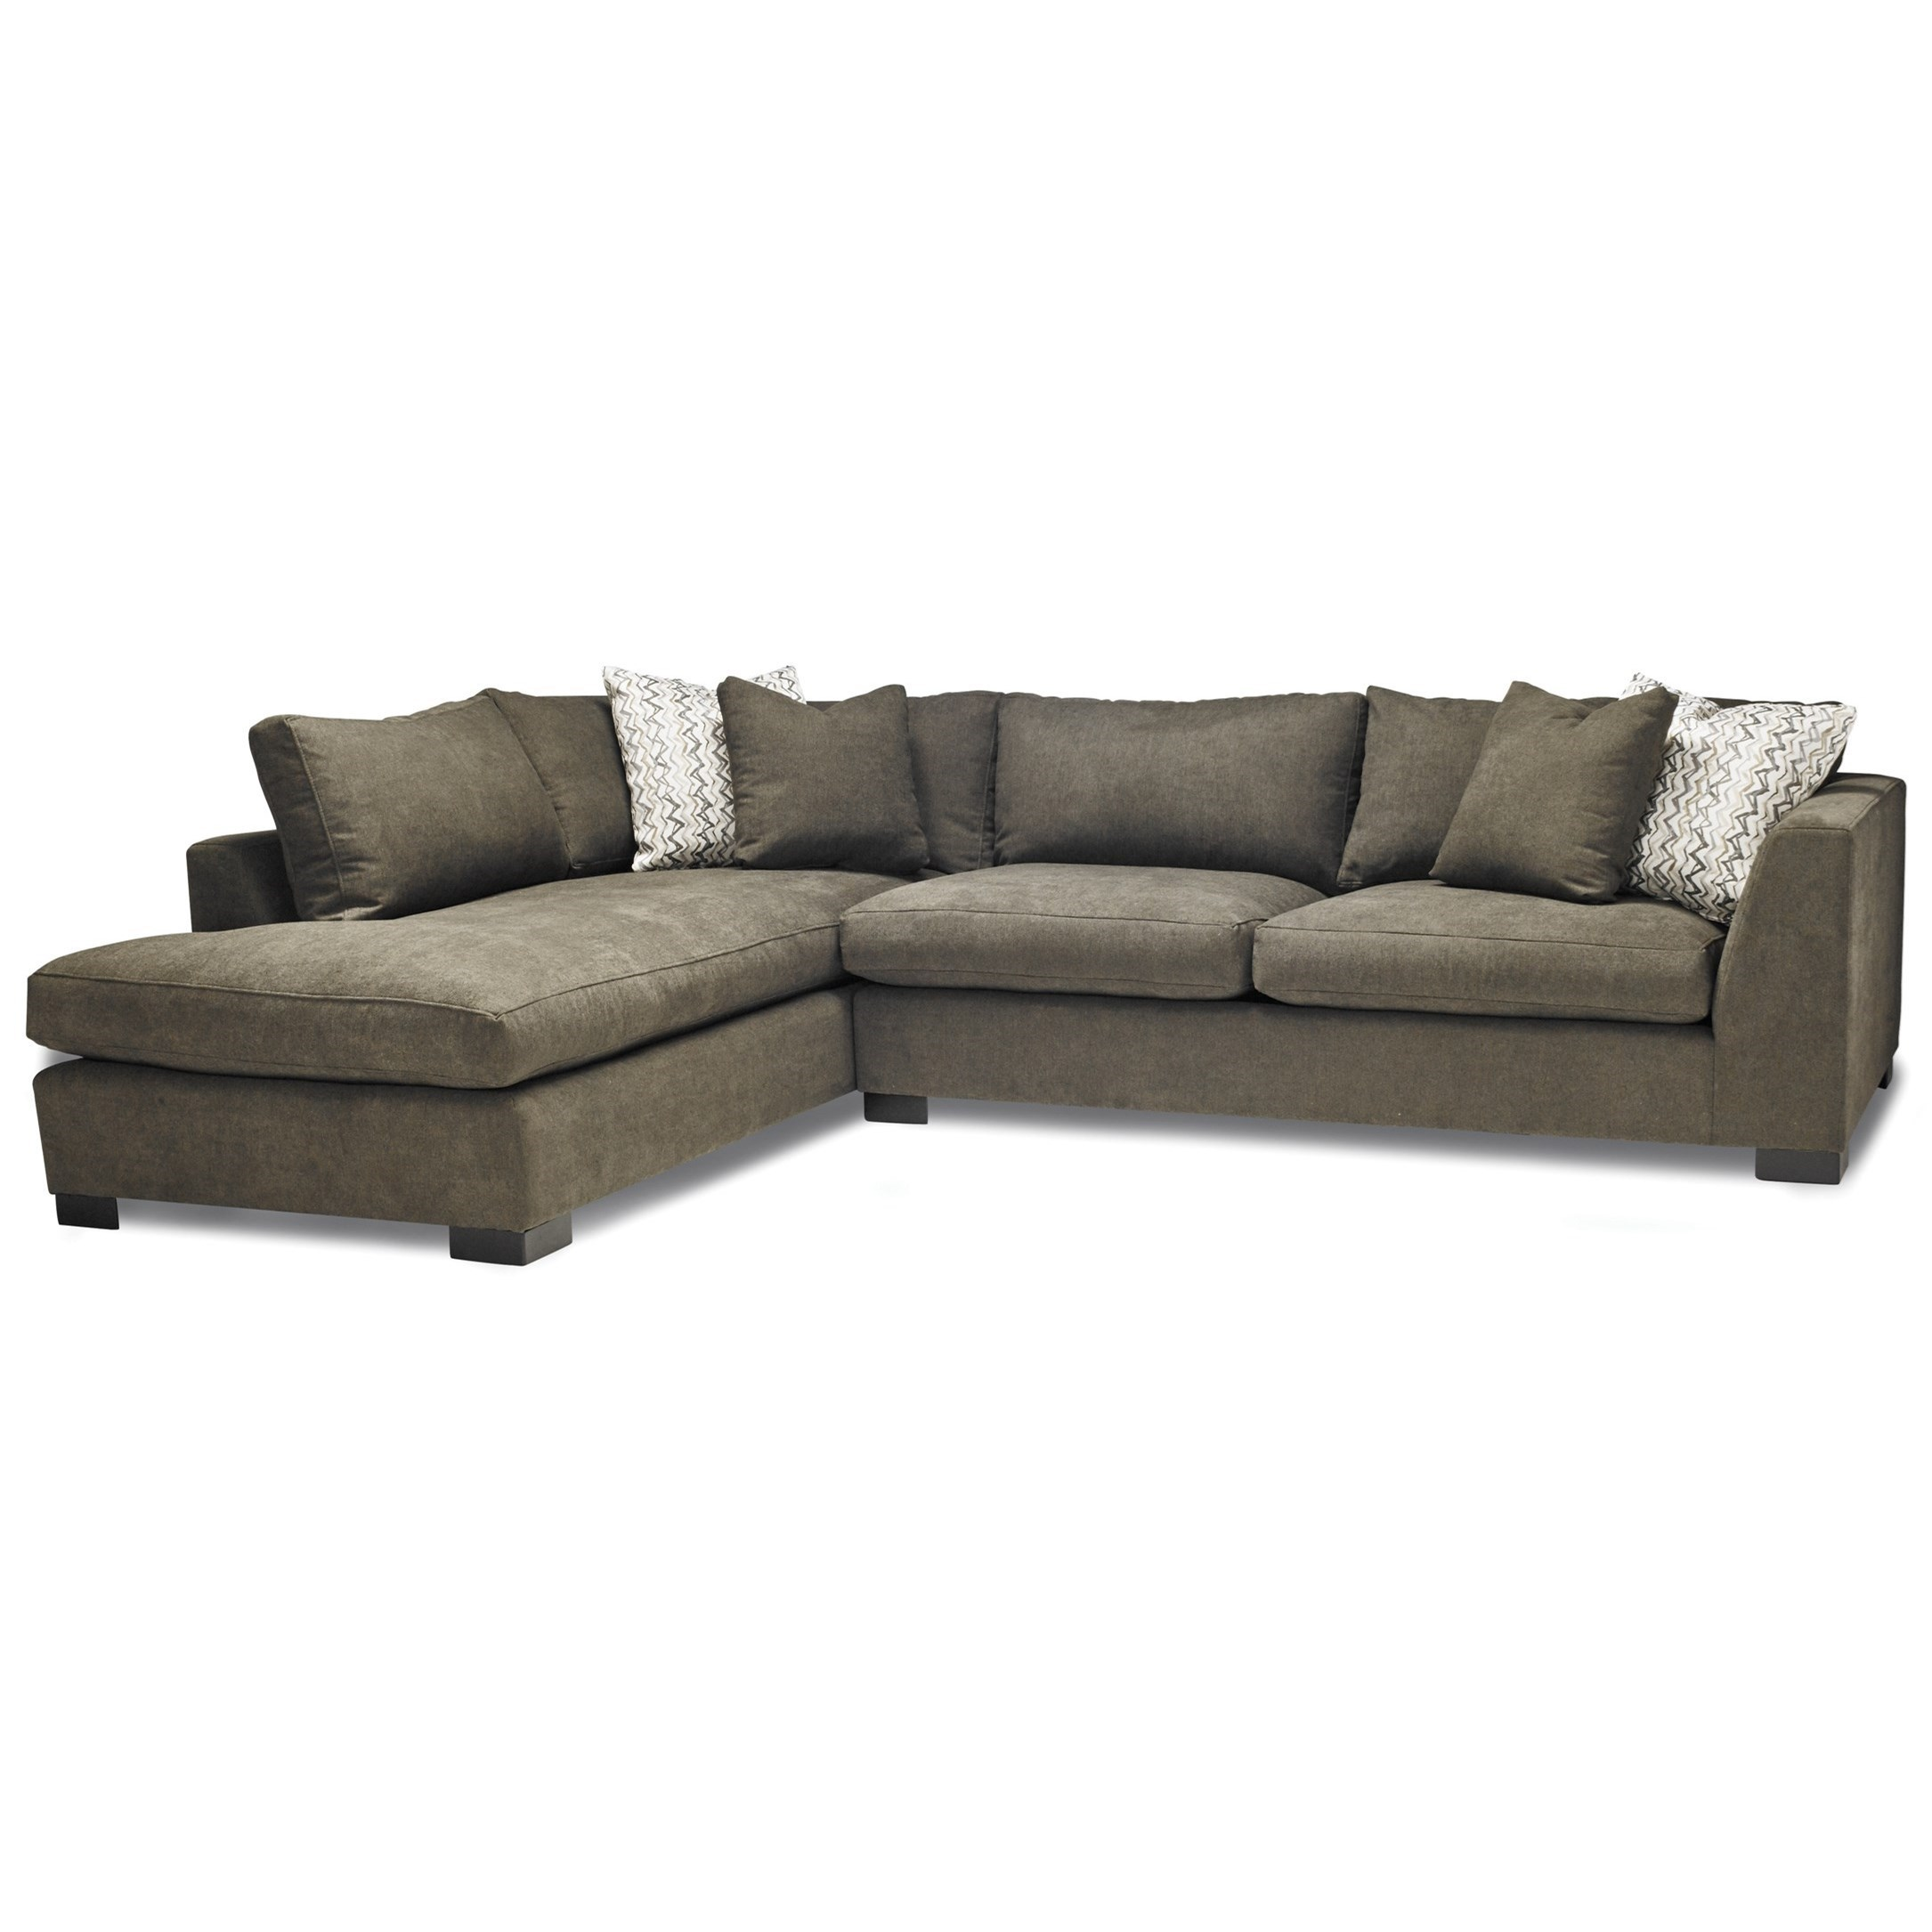 Stylus 20992 Pc Sectional Sofa